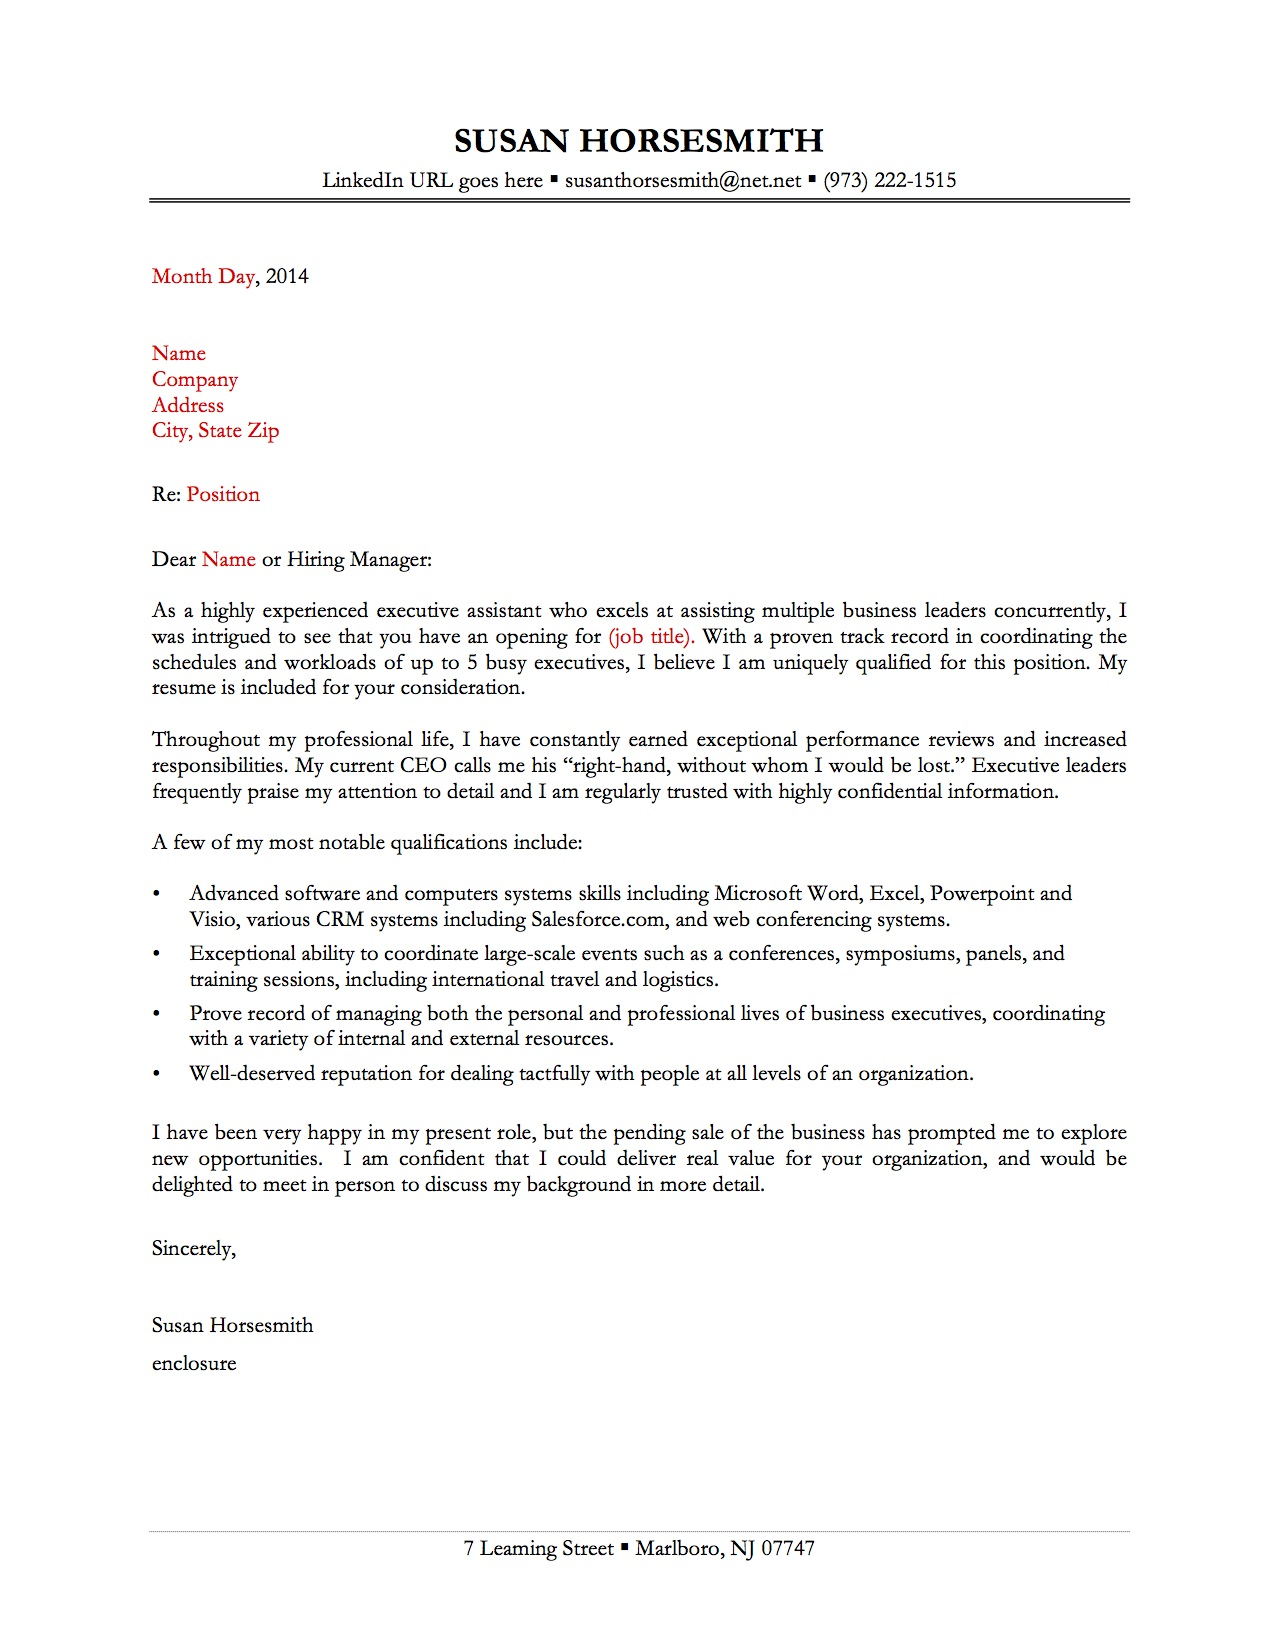 sample cover letter  cover letter sample unknown recipient